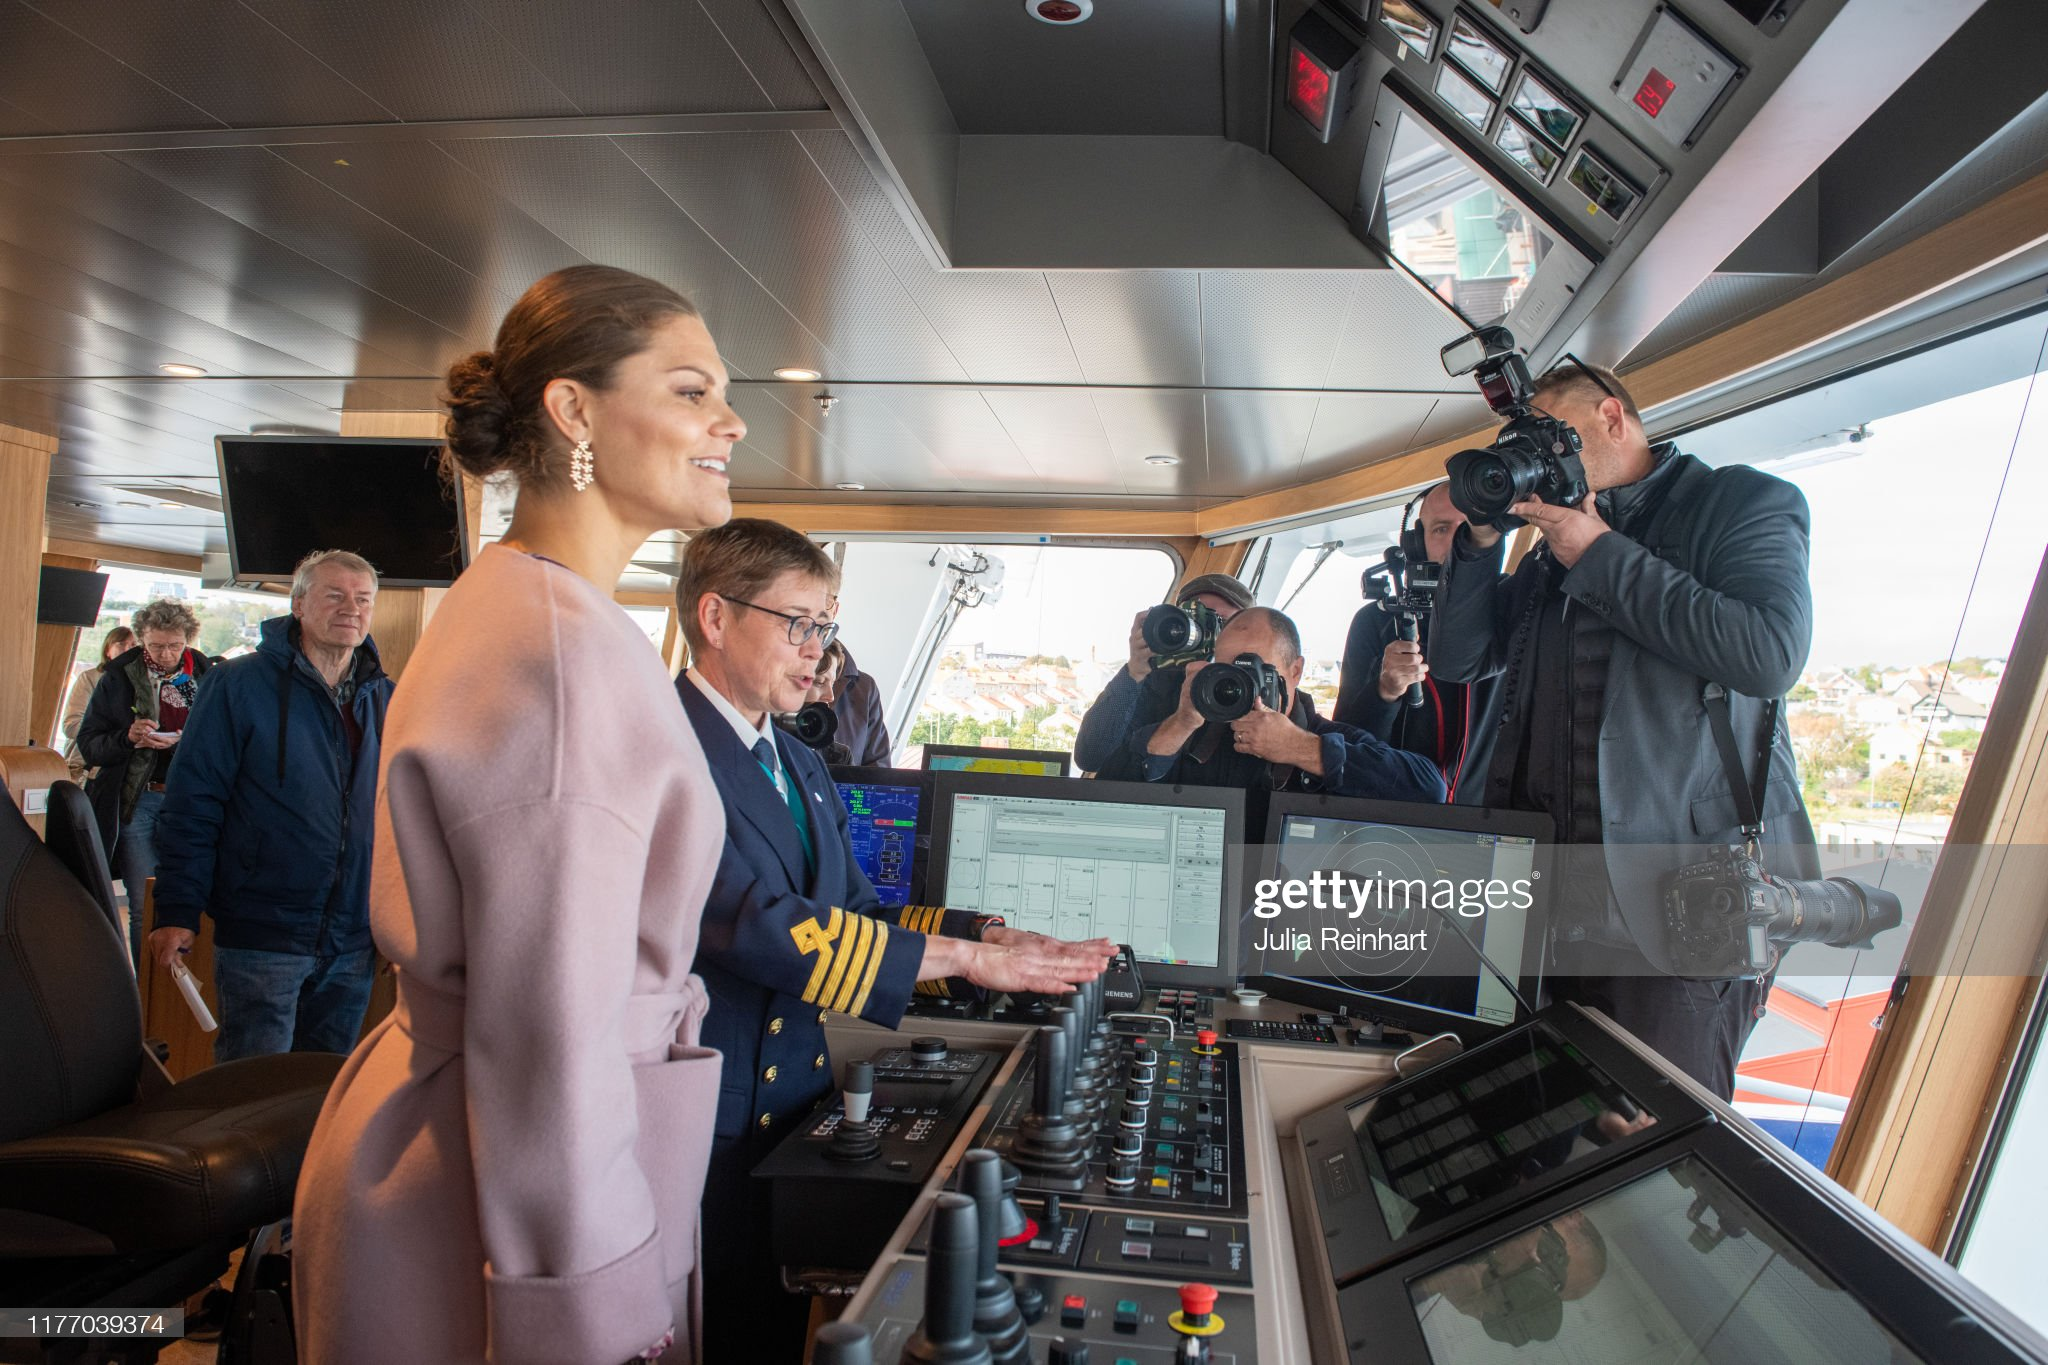 crown-princess-victoria-visits-the-sea-fish-laboratorys-newly-boat-picture-id1177039374